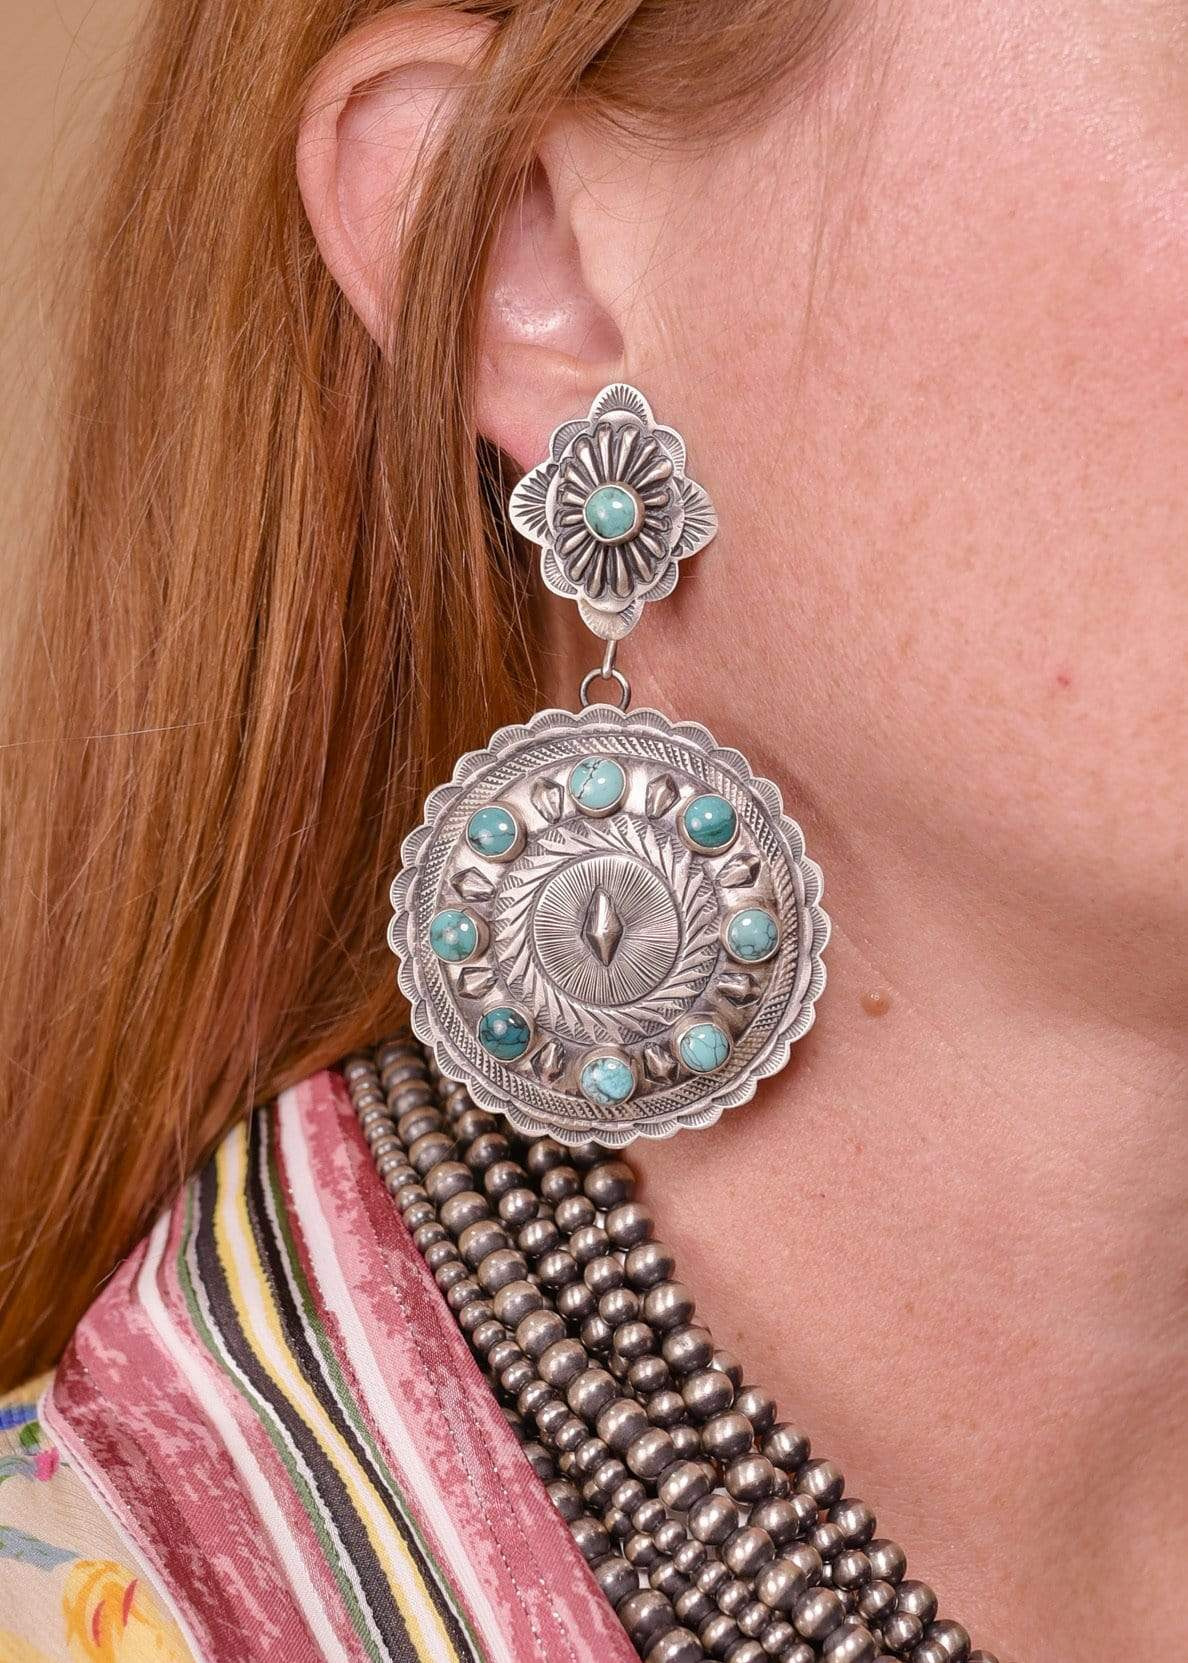 Accessorize In Style Sterling Earrings Sterling Double Concho Earrings with Turquoise